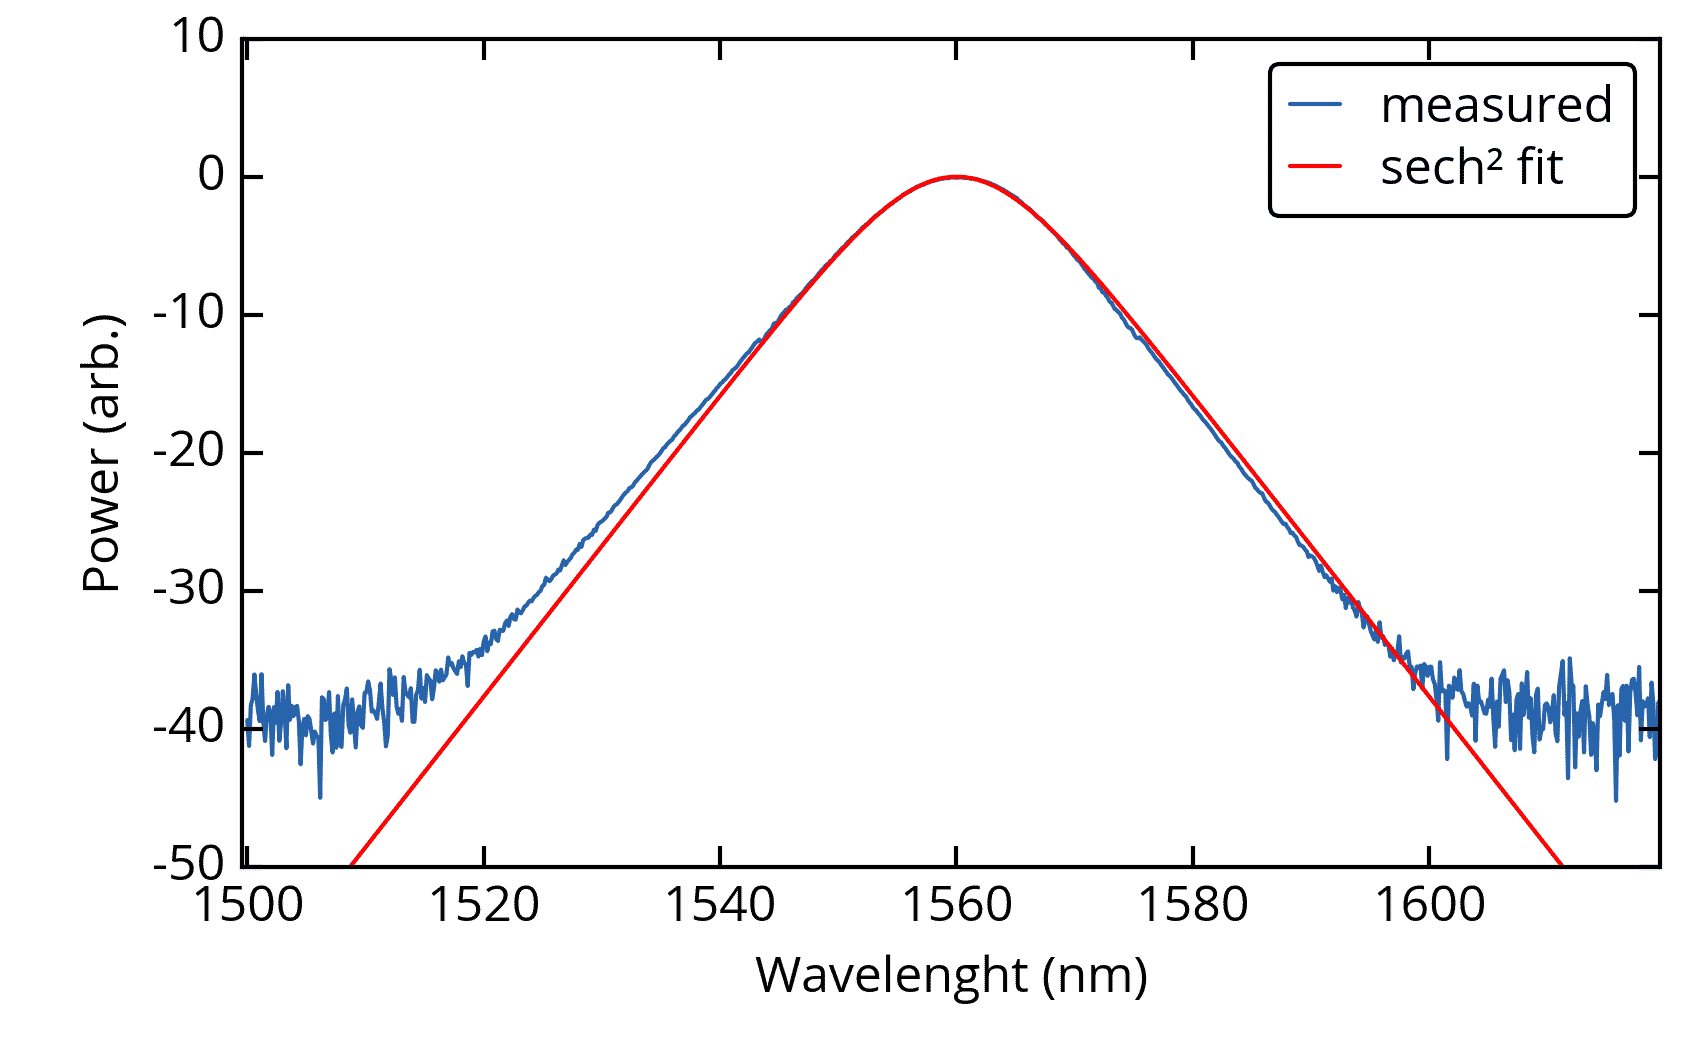 Optical Spectrum of MENHIR-1550 at 250 MHz